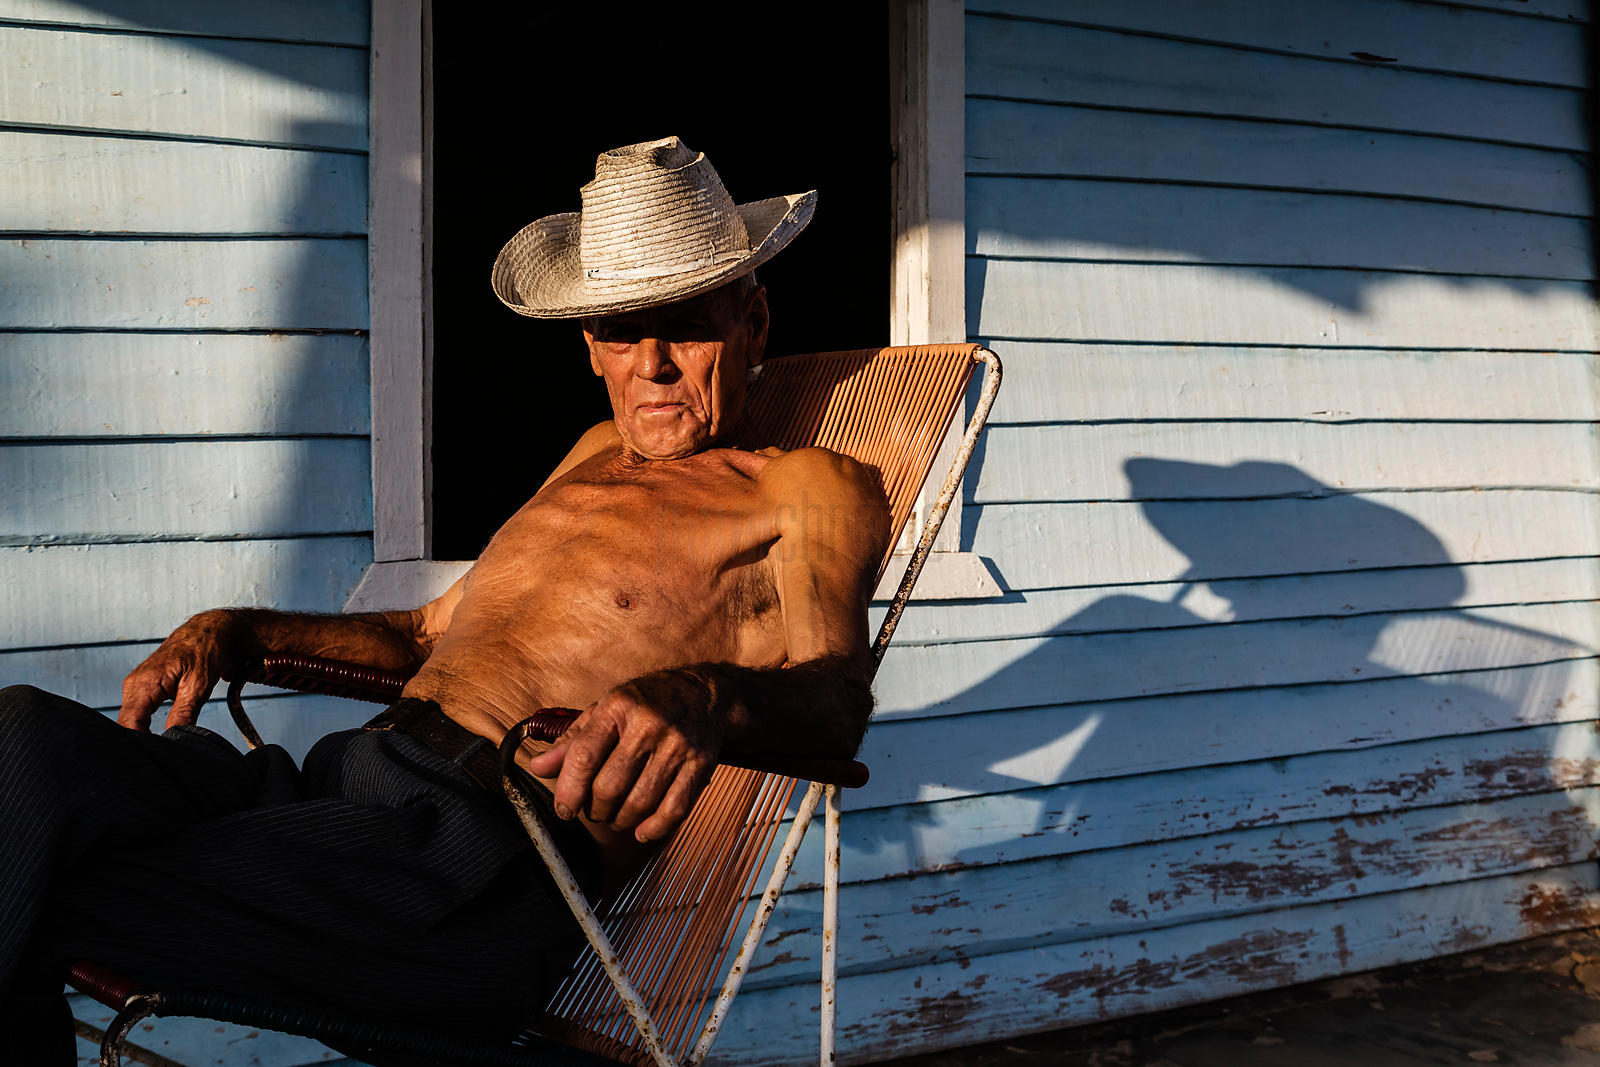 Elderly Man Sitting on Porch